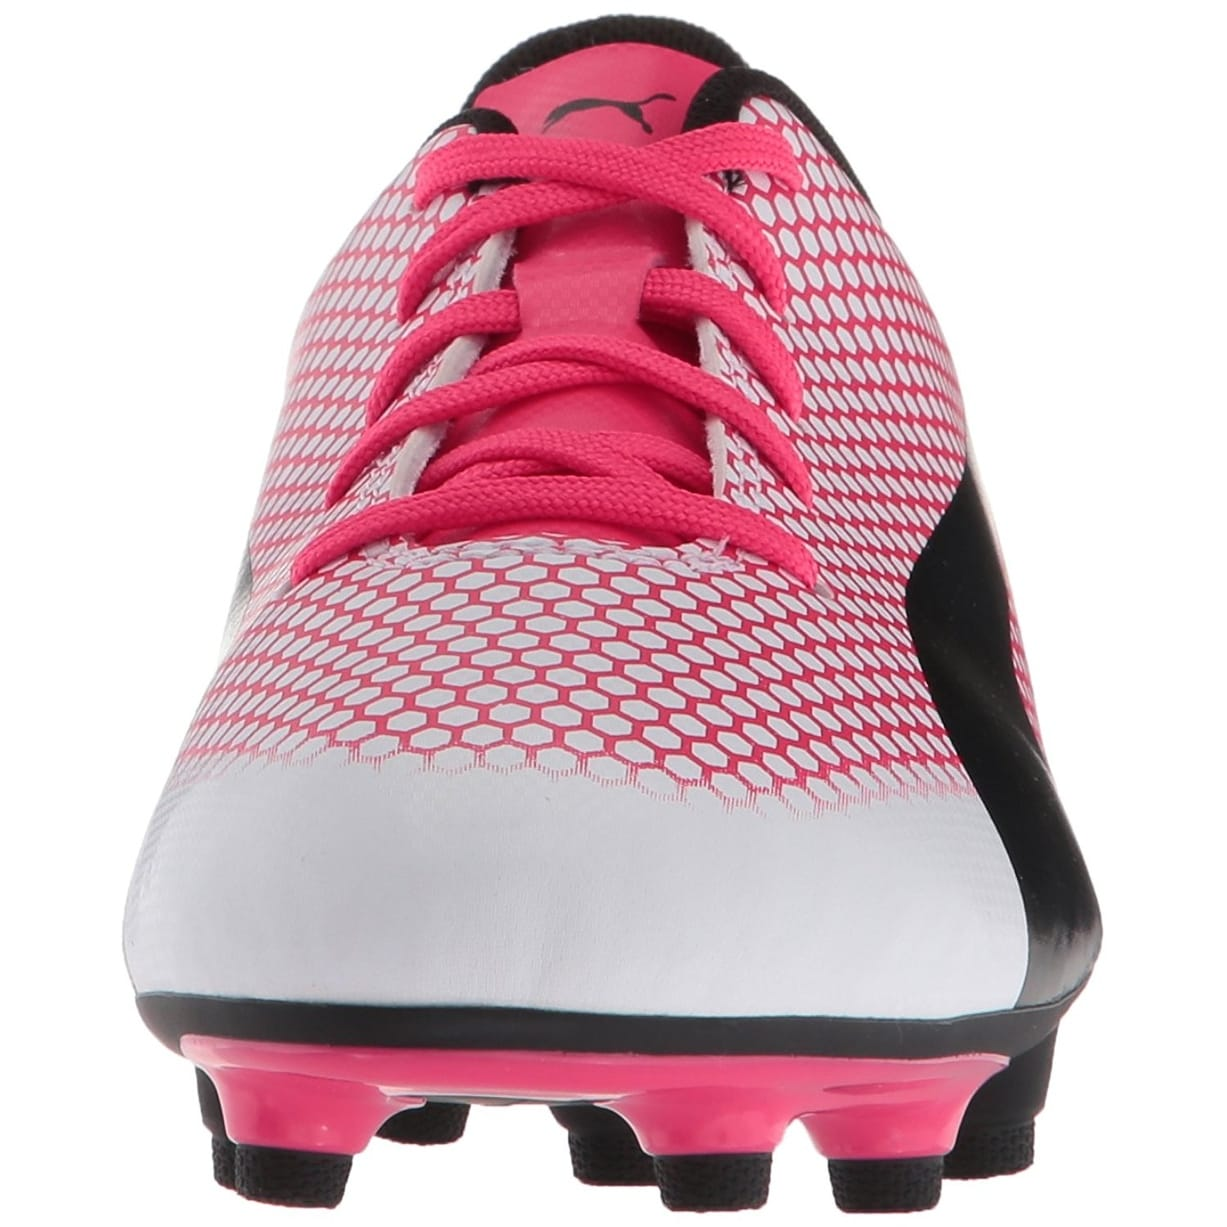 eeefe7717 Shop Kids PUMA Girls spirit fg jr. Low Top Lace Up Softball Shoes - Free  Shipping On Orders Over  45 - Overstock - 22254081